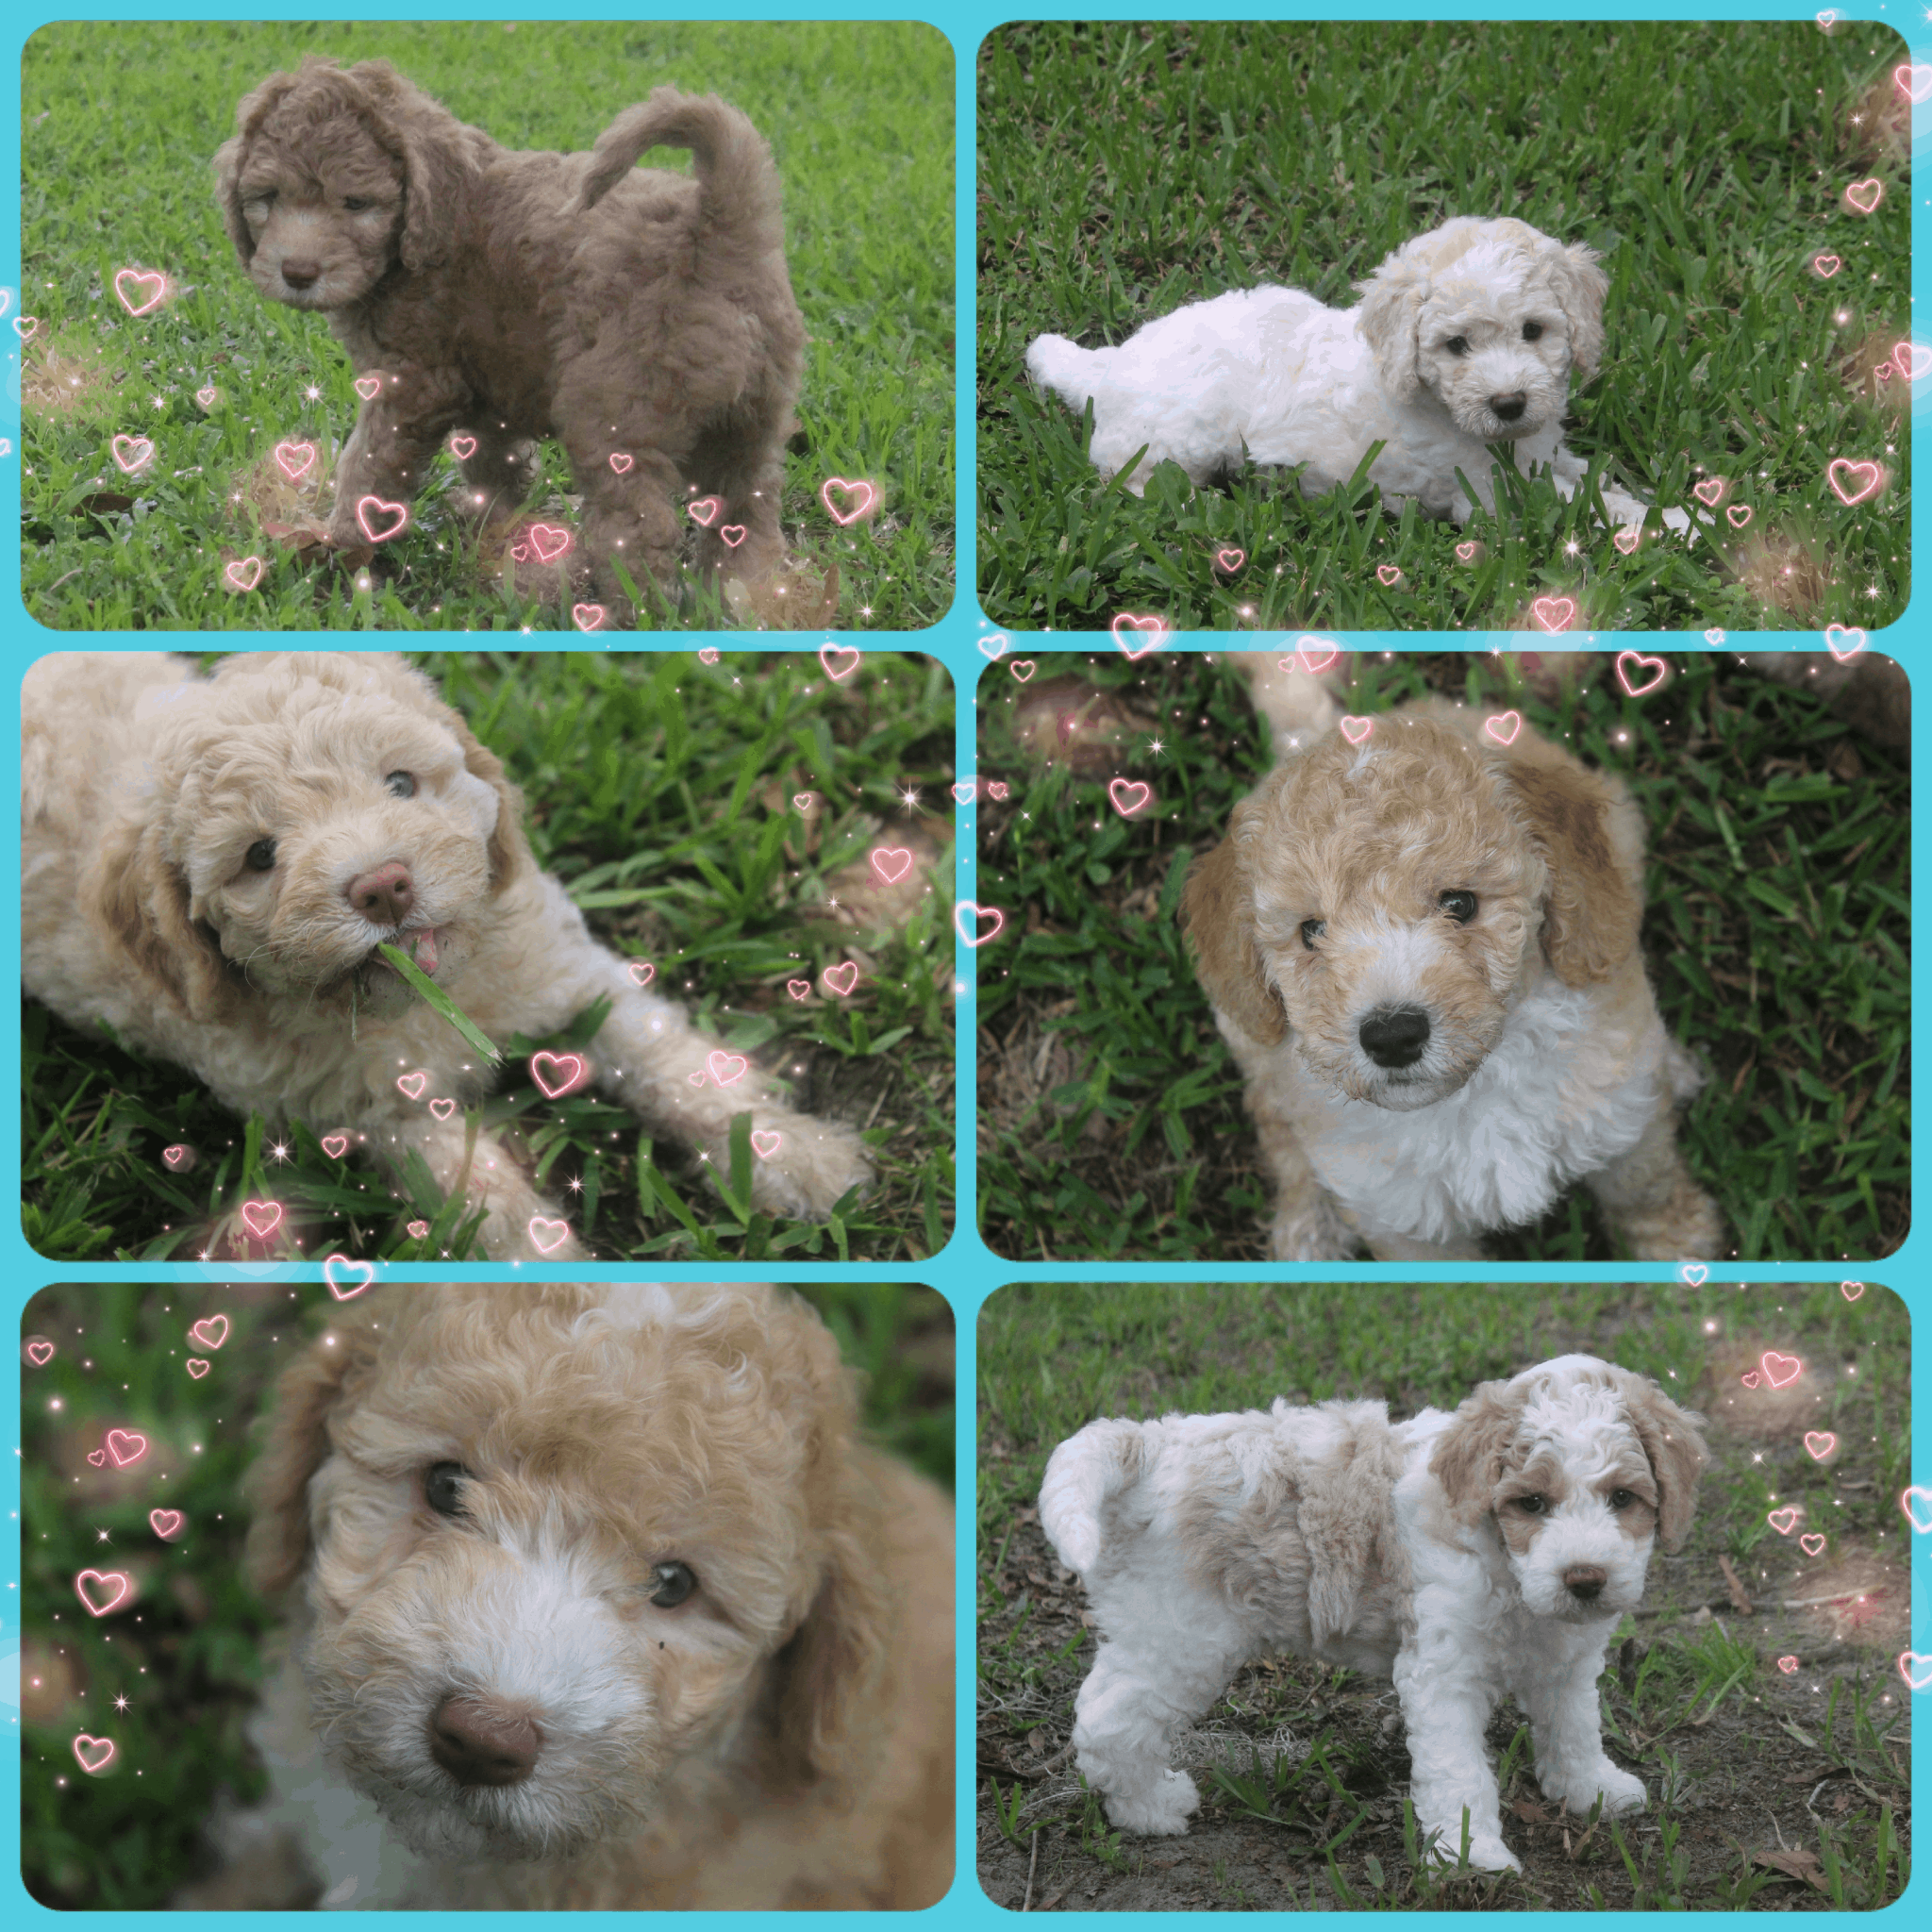 Dilly and Coco's litter of 6 Australian labradoodle puppies were born on April 29, 2020. They are adorable large mini puppies and have gone to fabulous homes.